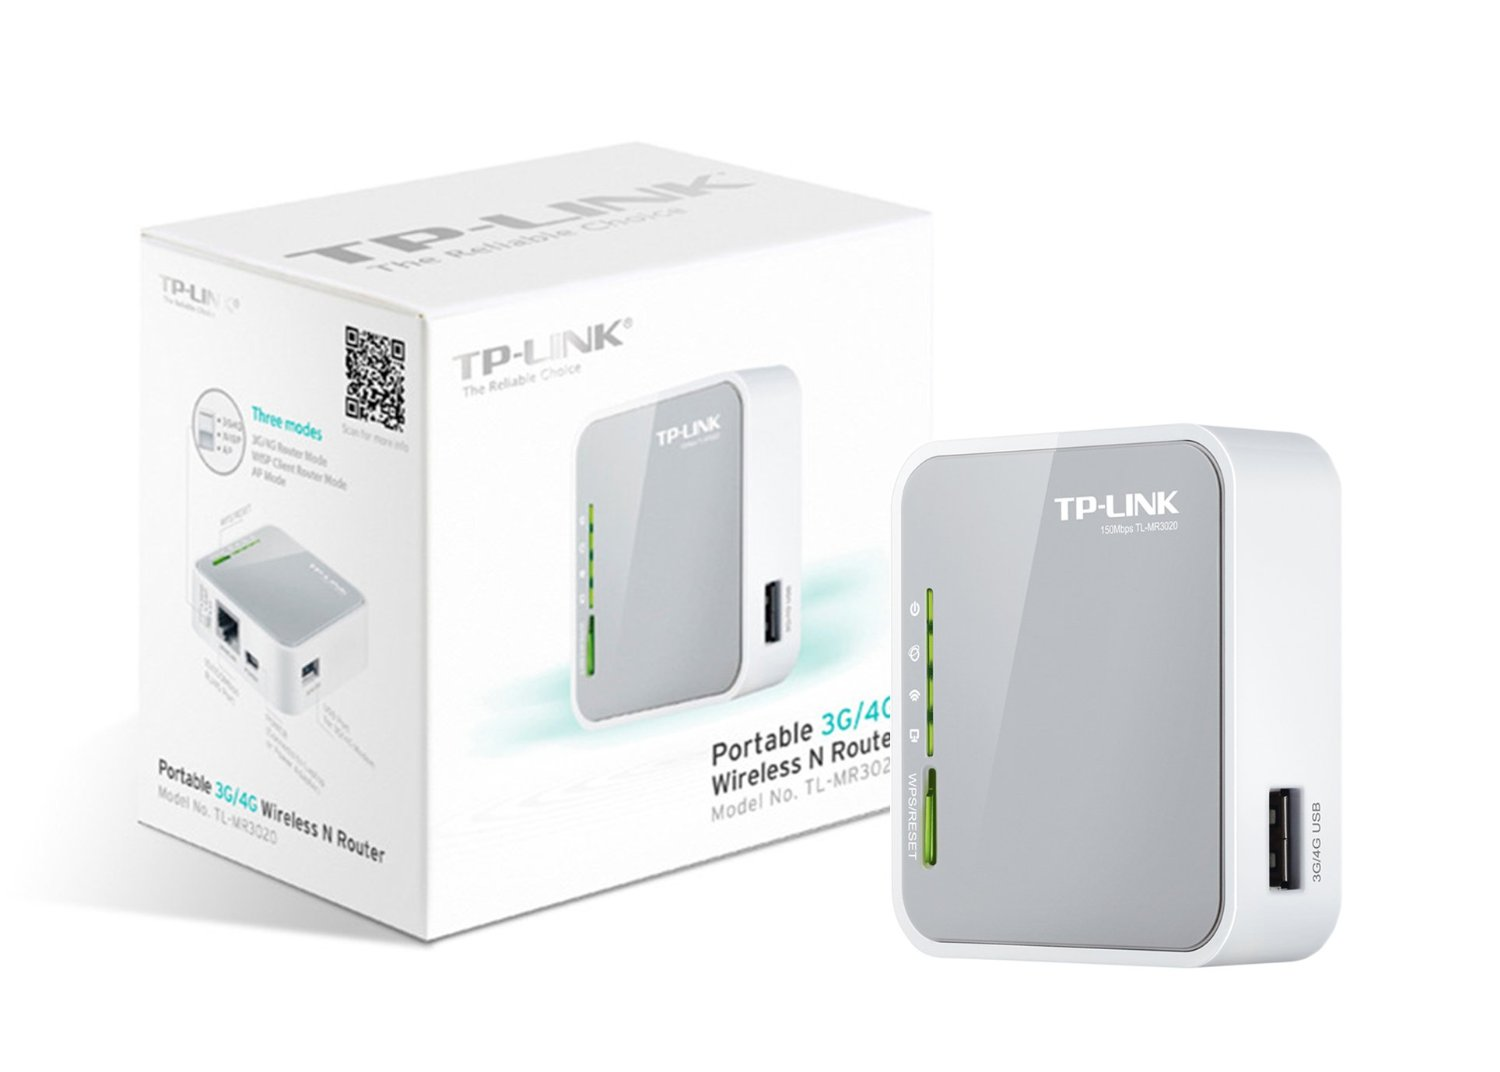 tp link tl mr3020 review